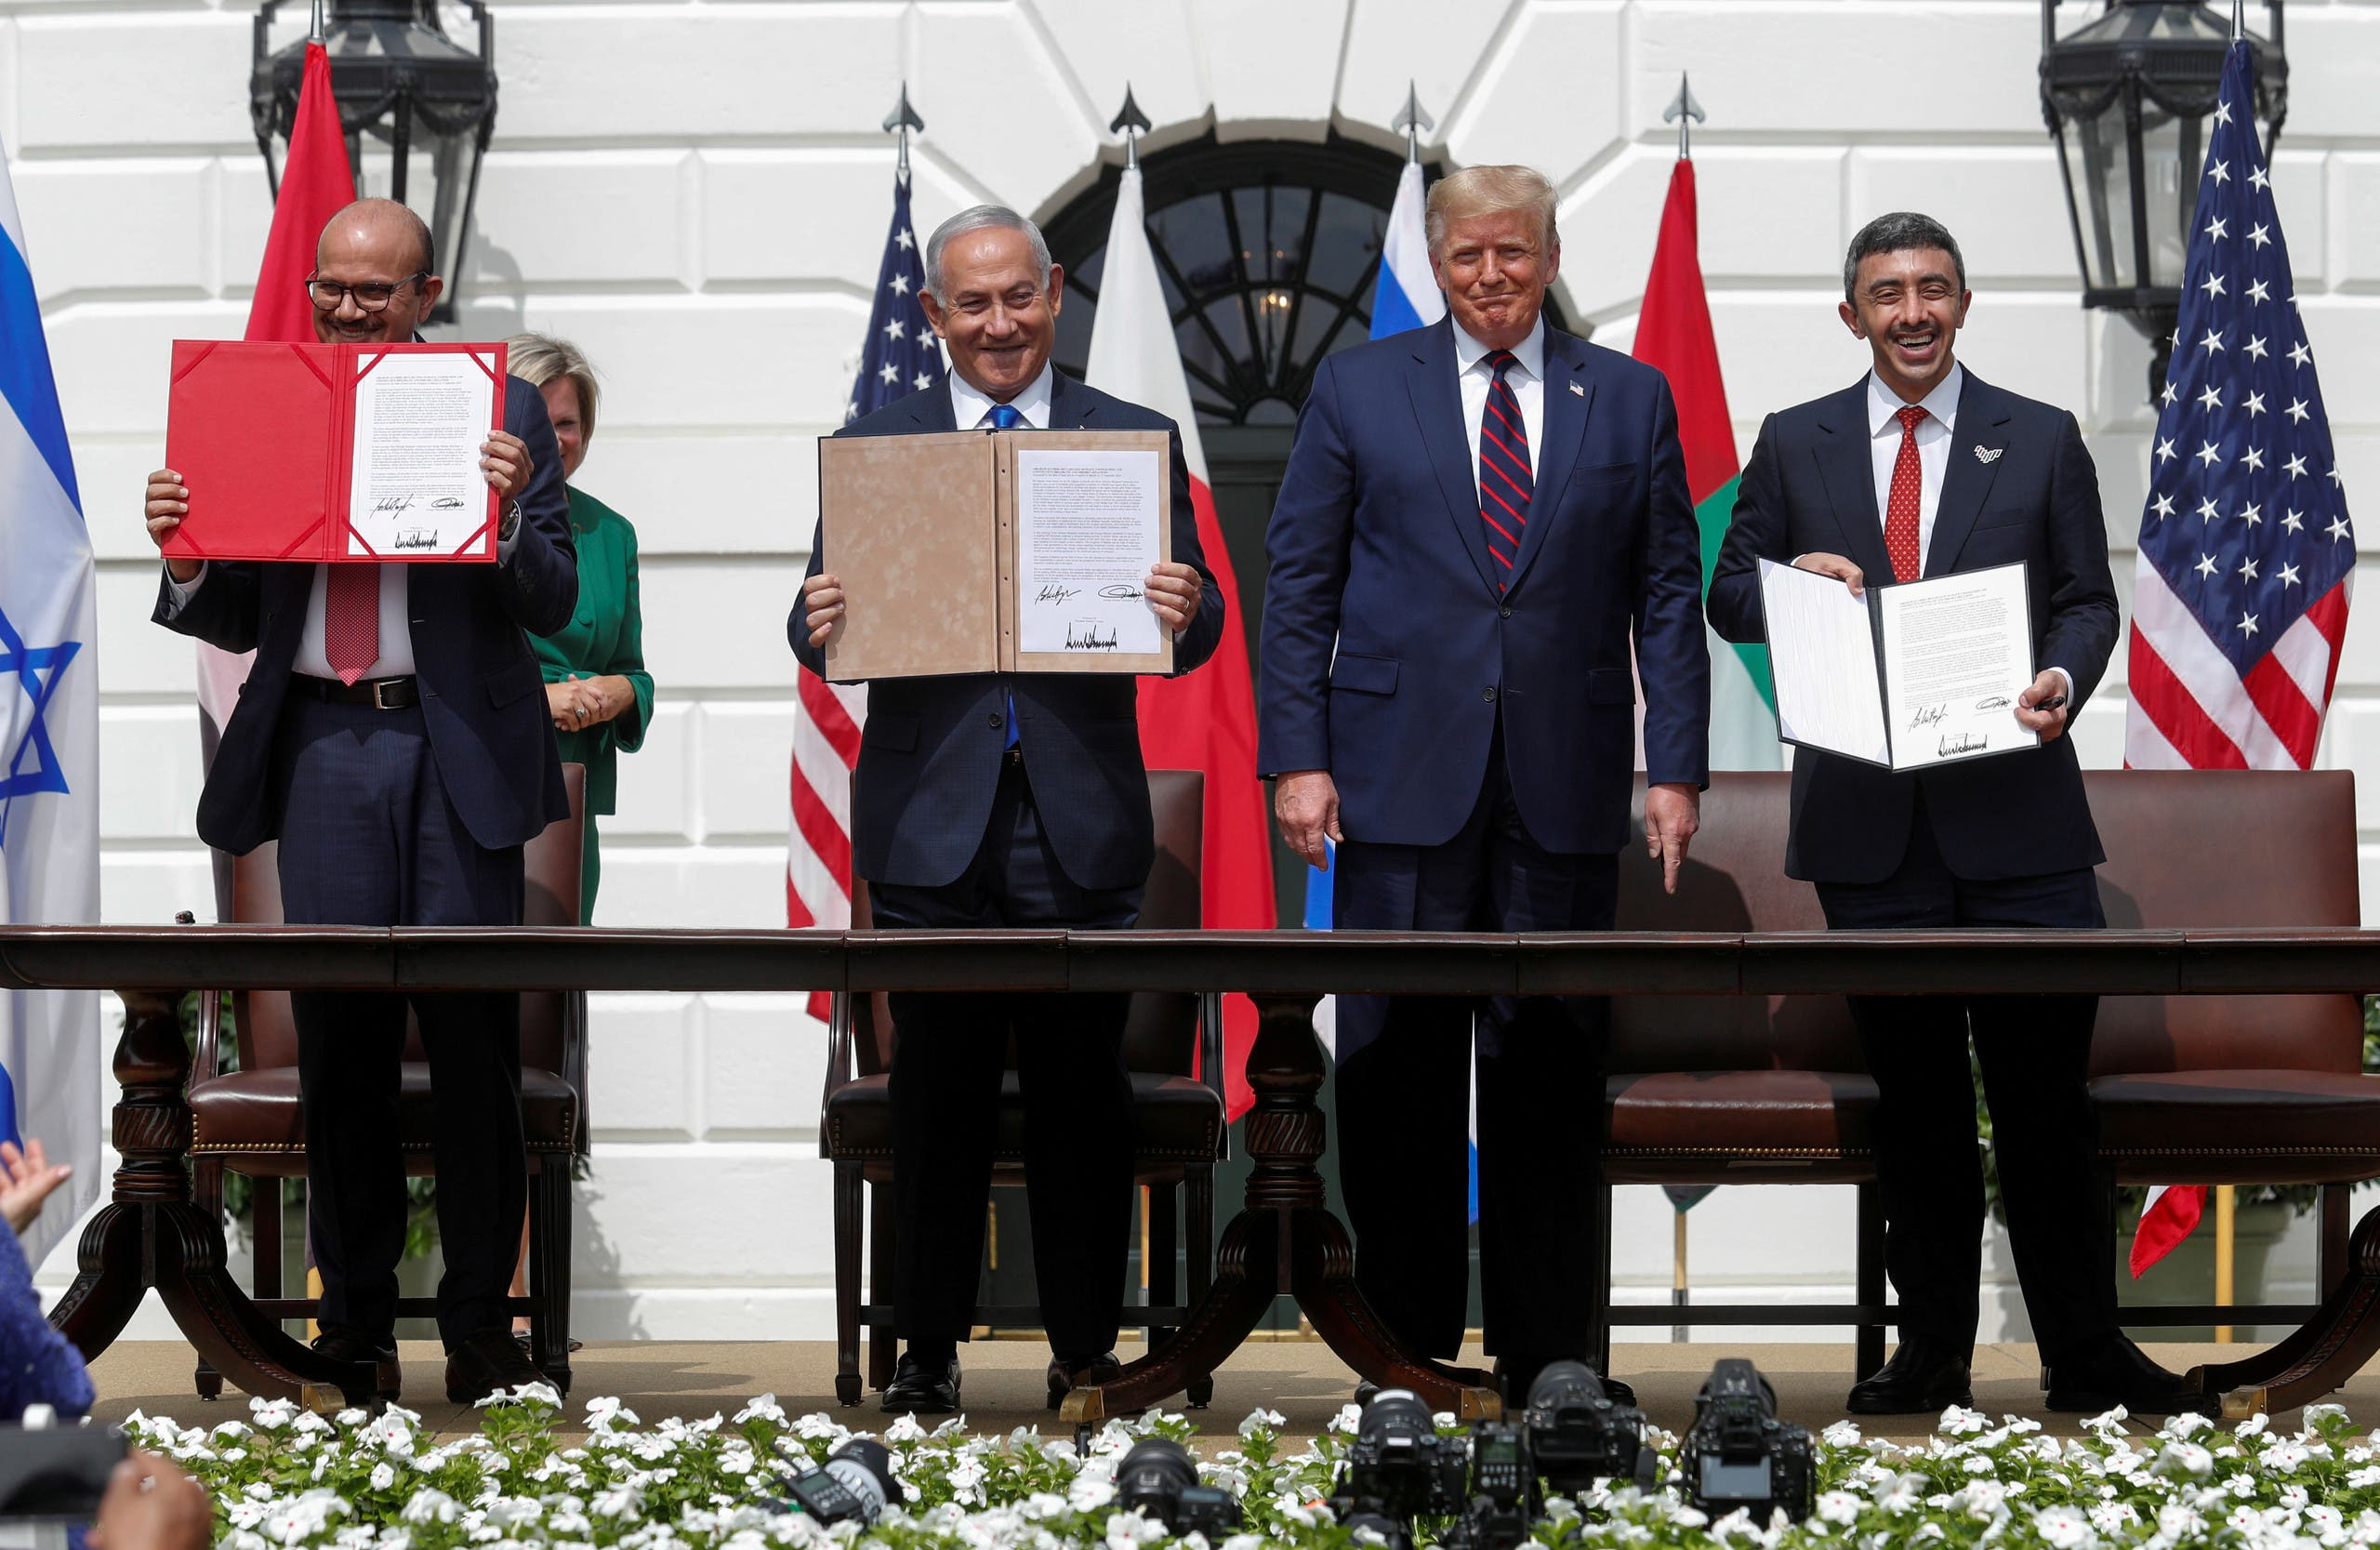 The signing of the Abraham Accords, normalizing relations between Israel and some of its Middle East neighbors, Sept. 15, 2020. (Reuters)